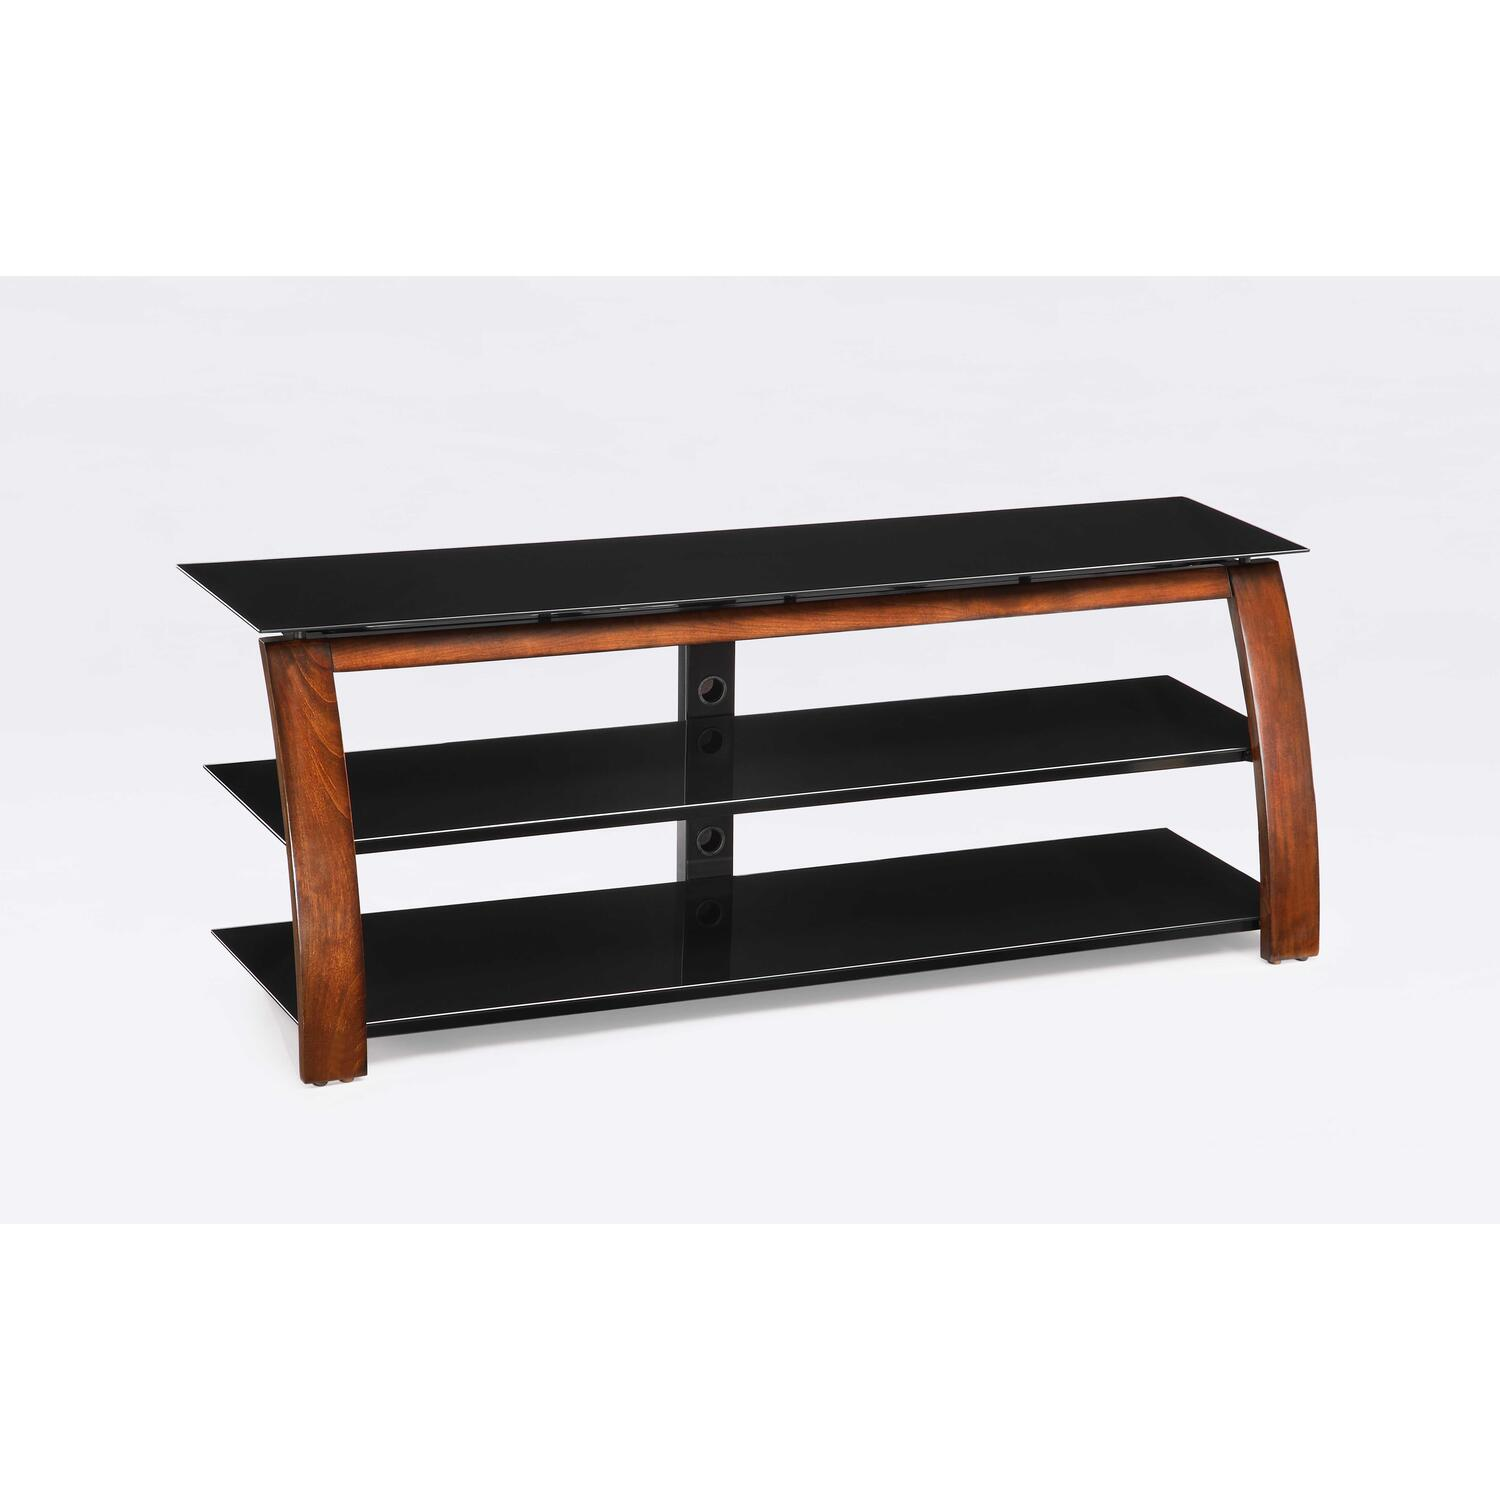 65 table top console ojcommerce for 65 sofa table